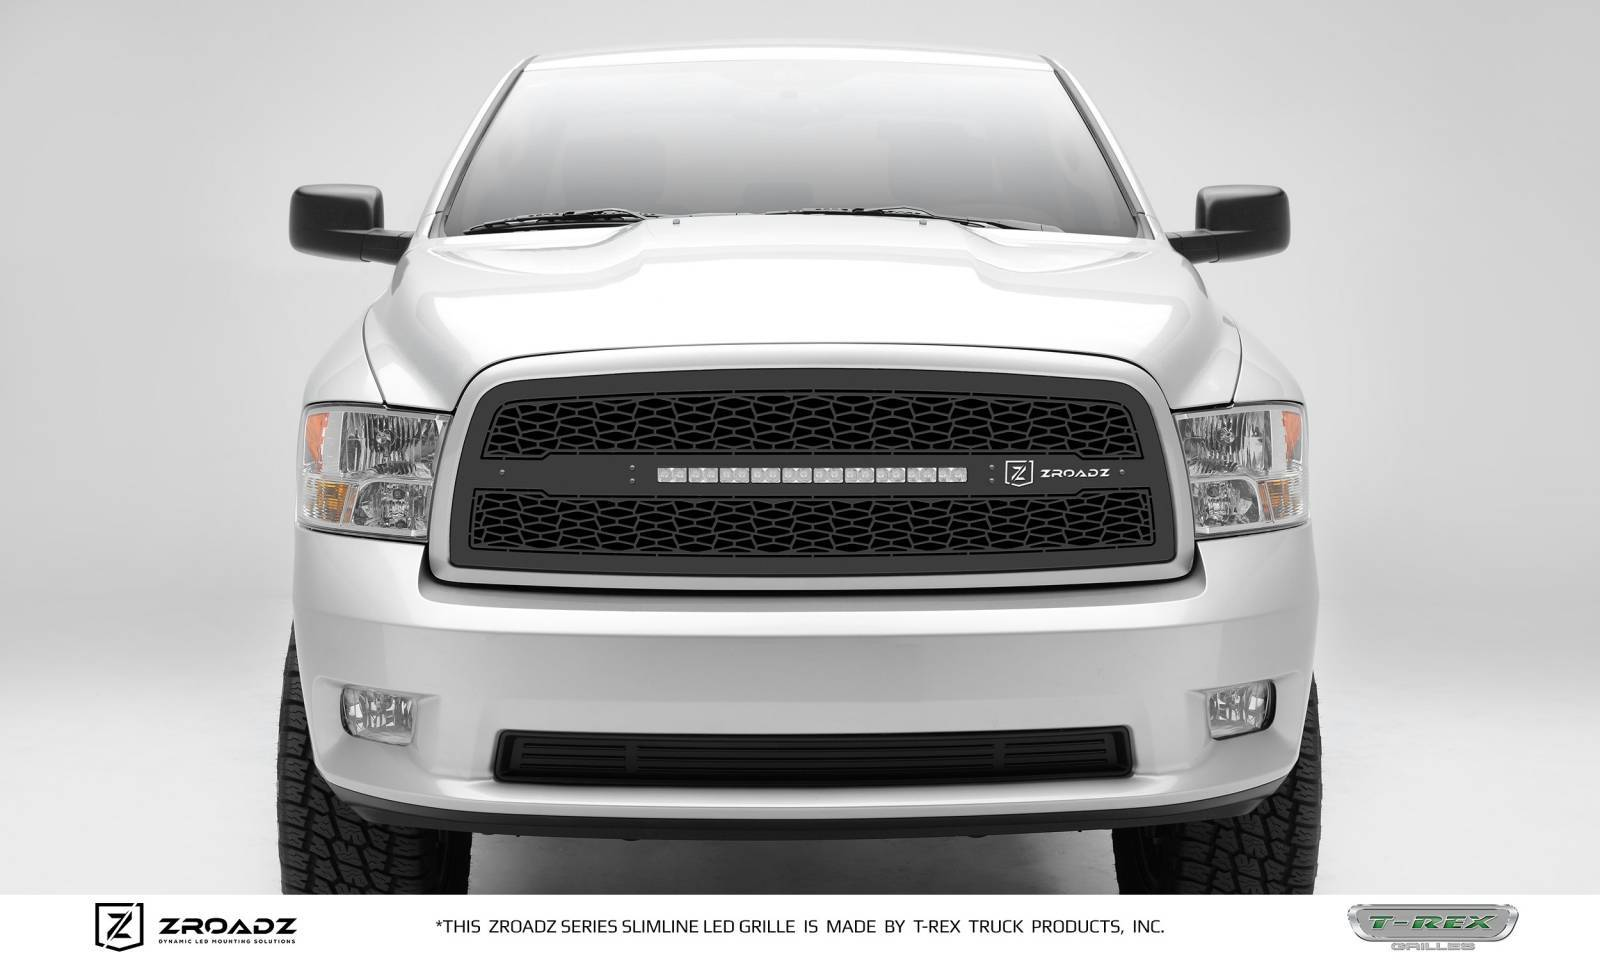 T-REX Grilles - 2009-2012 Ram 1500 Main Grille, Including (1) 20 Inch ZROADZ LED Straight Single Row Slim Light Bar - Z314571